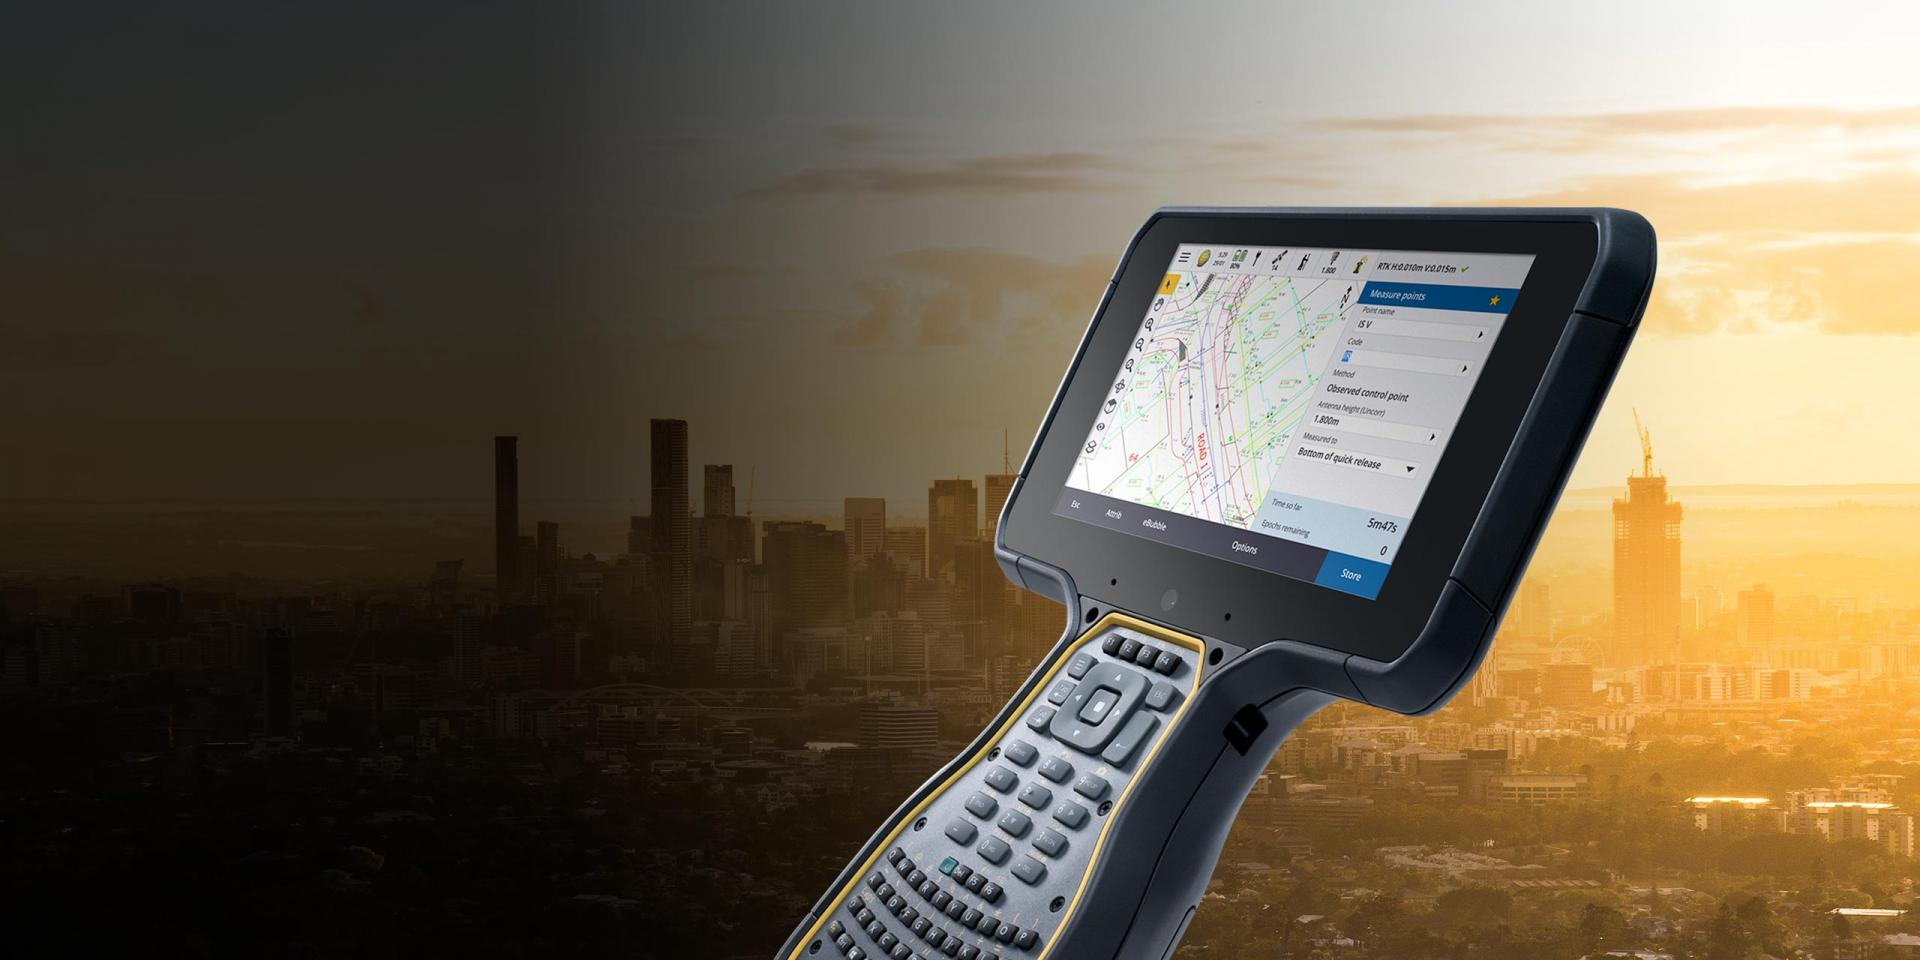 Trimble TSC7 + Trimble Access Land Surveying Software